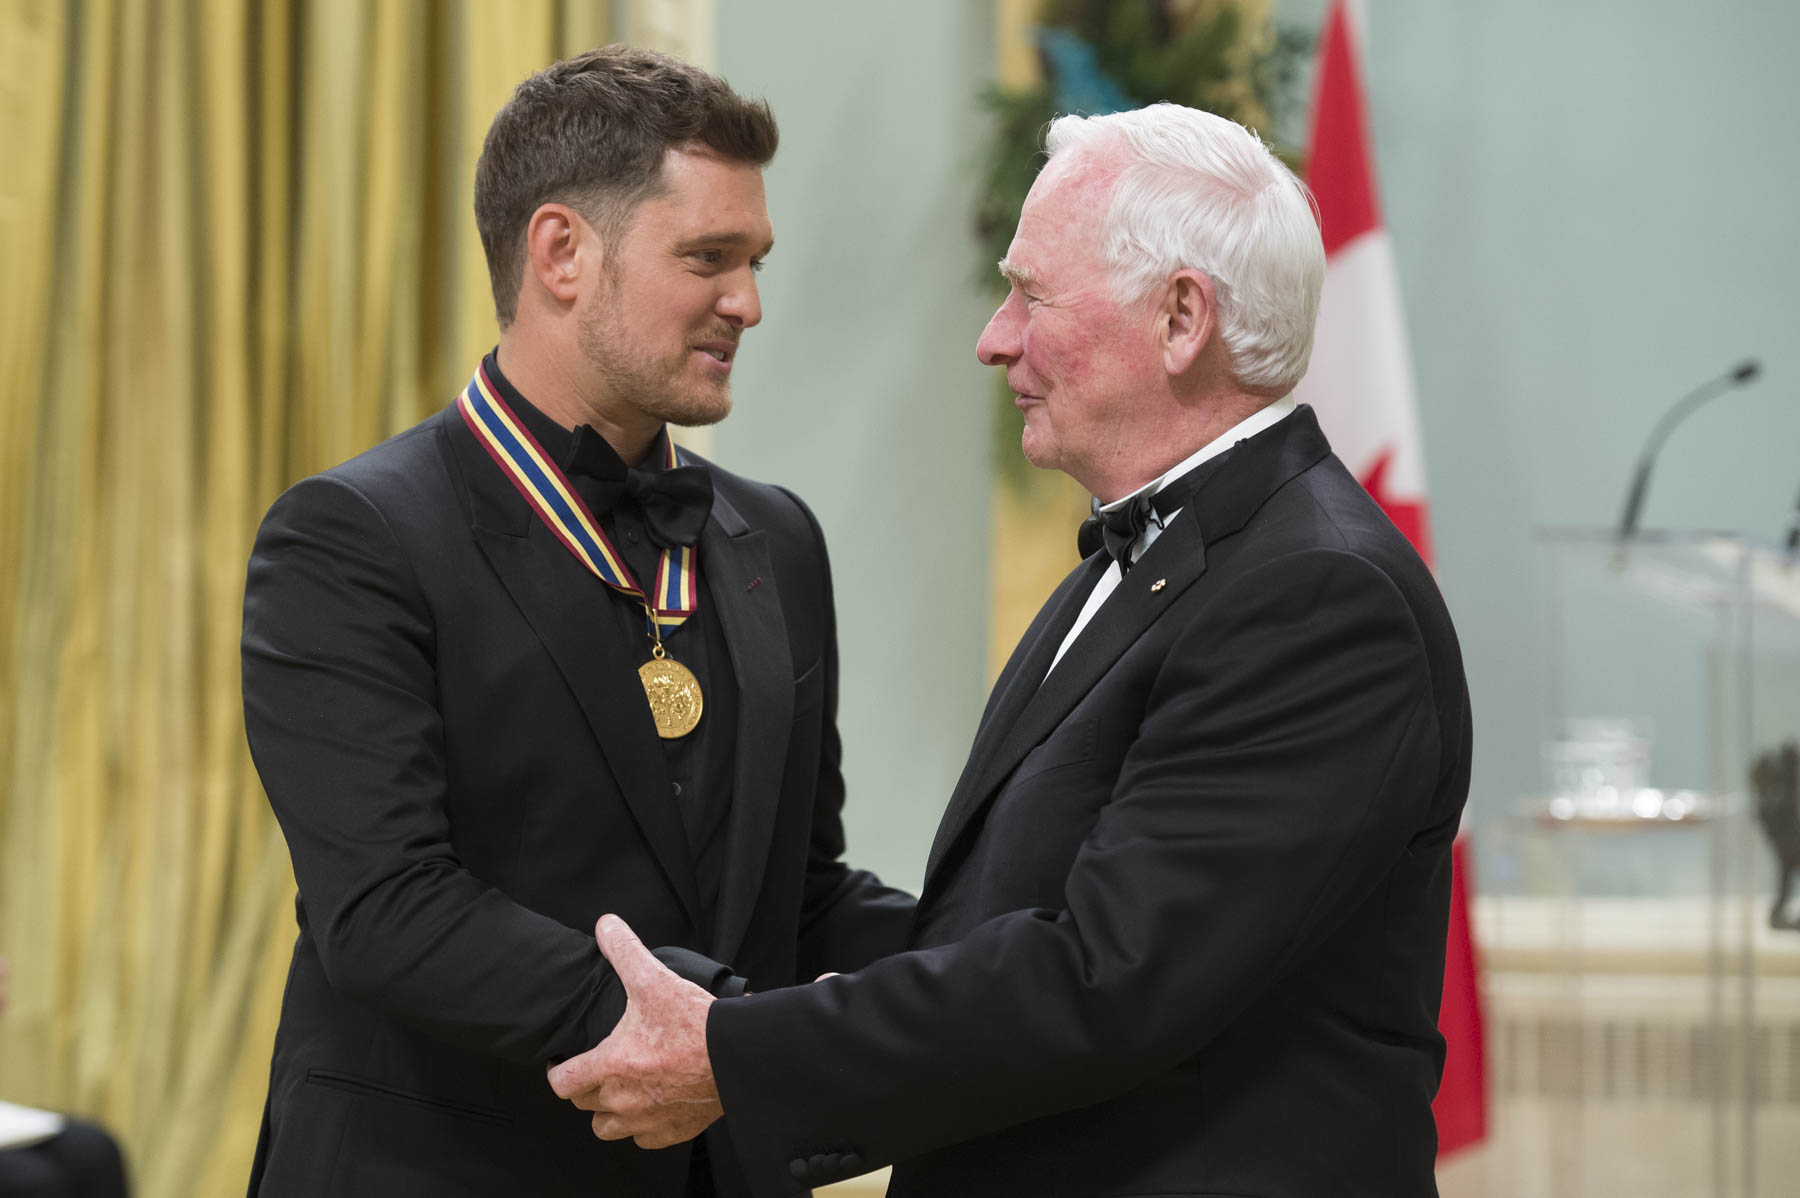 His Excellency presented The National Arts Centre Award to Michael Bublé, singer and entertainer.